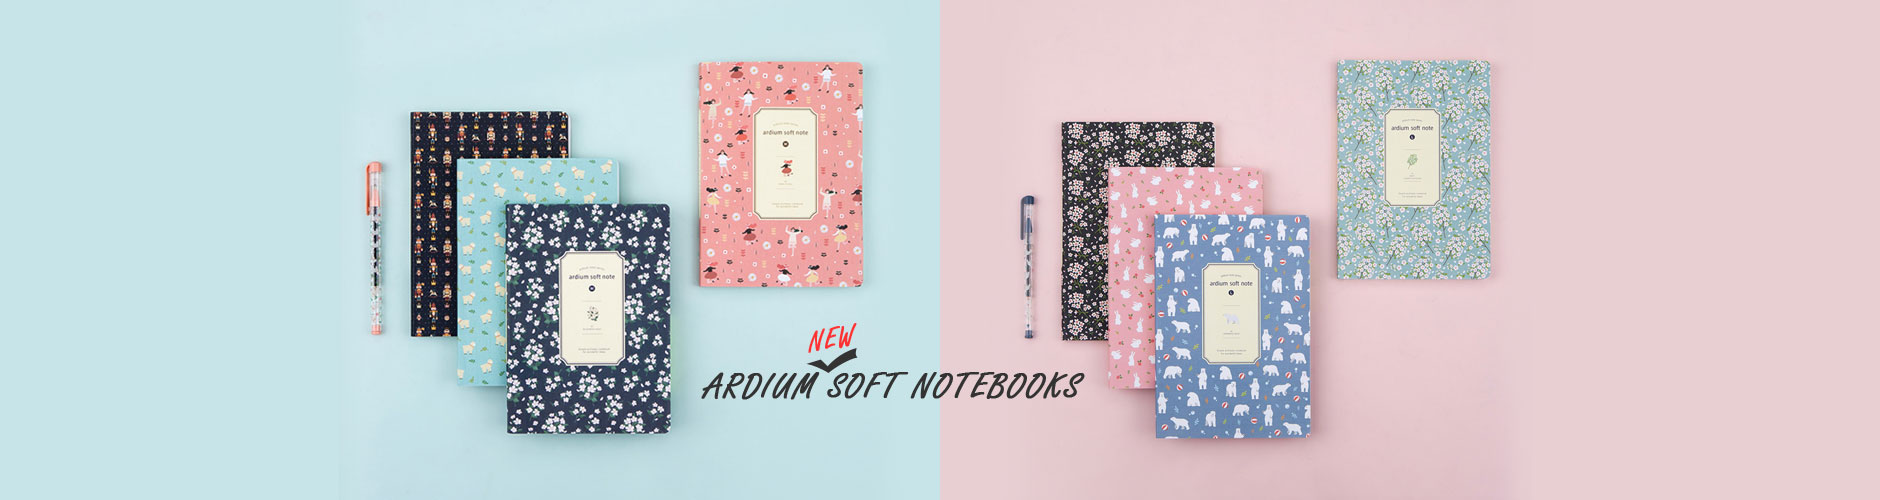 fallindesign ardium soft notebooks